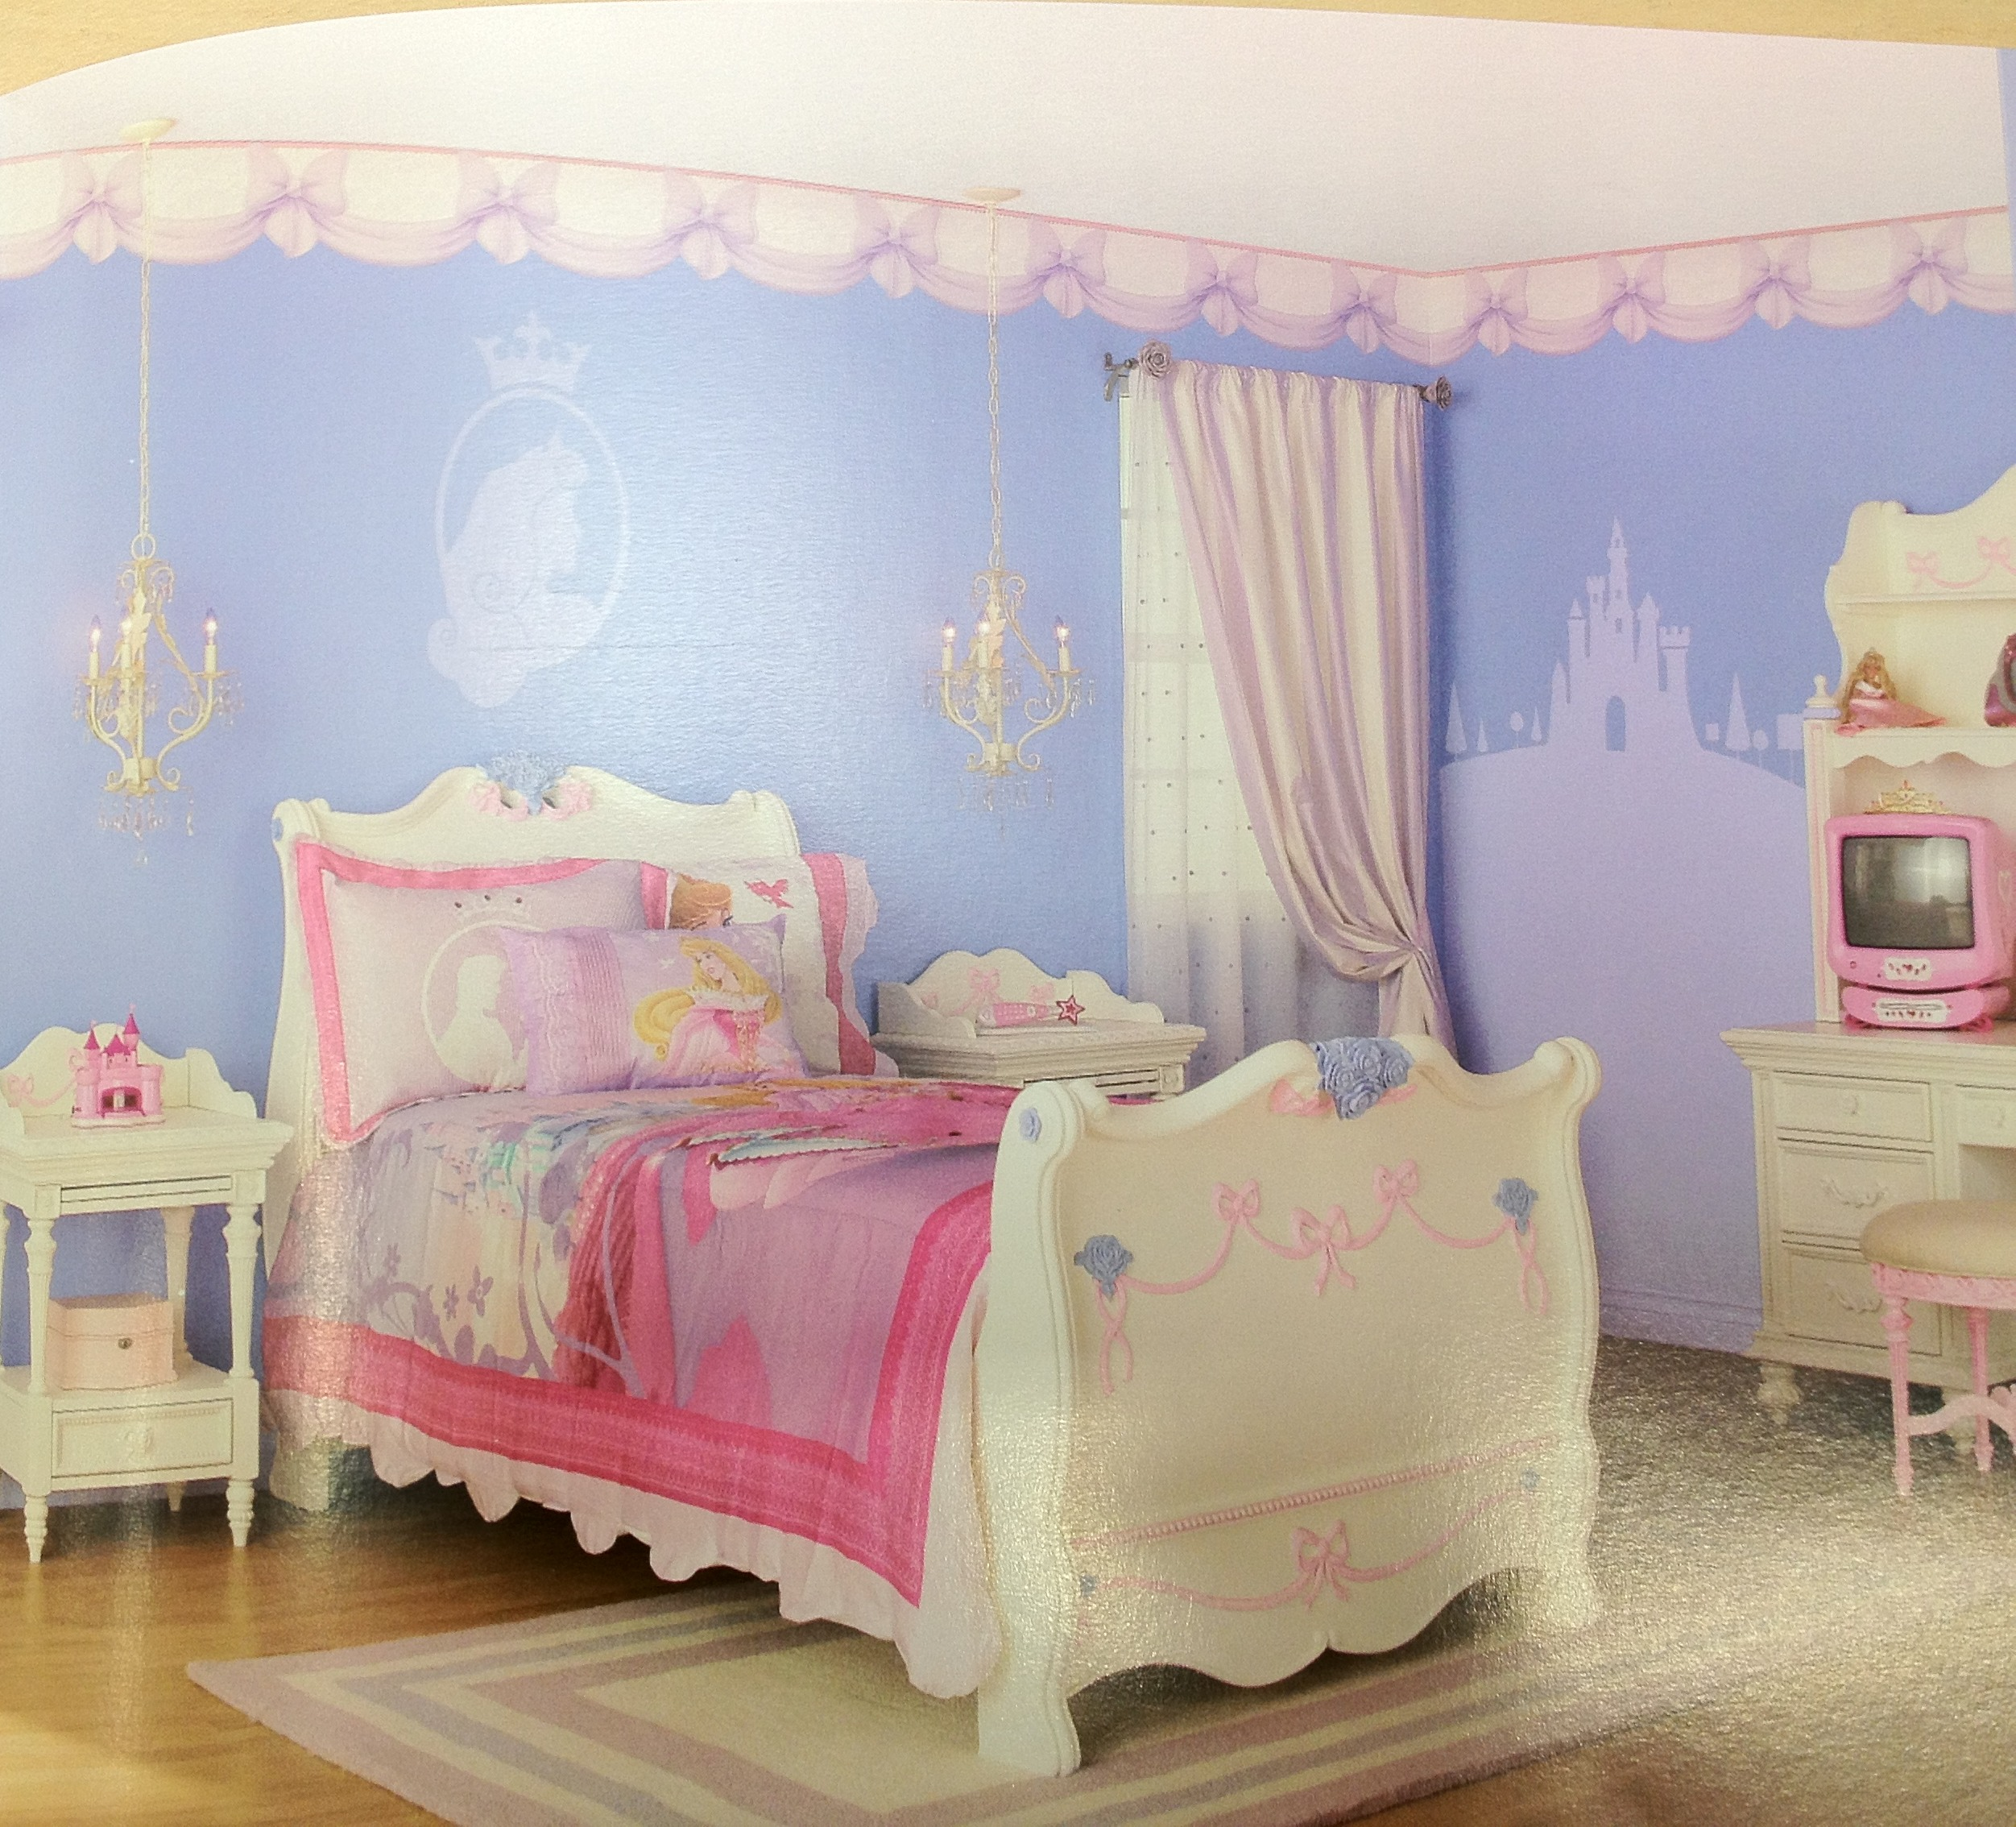 Lifestyle branding and the disney princess megabrand dr for Princess bedroom